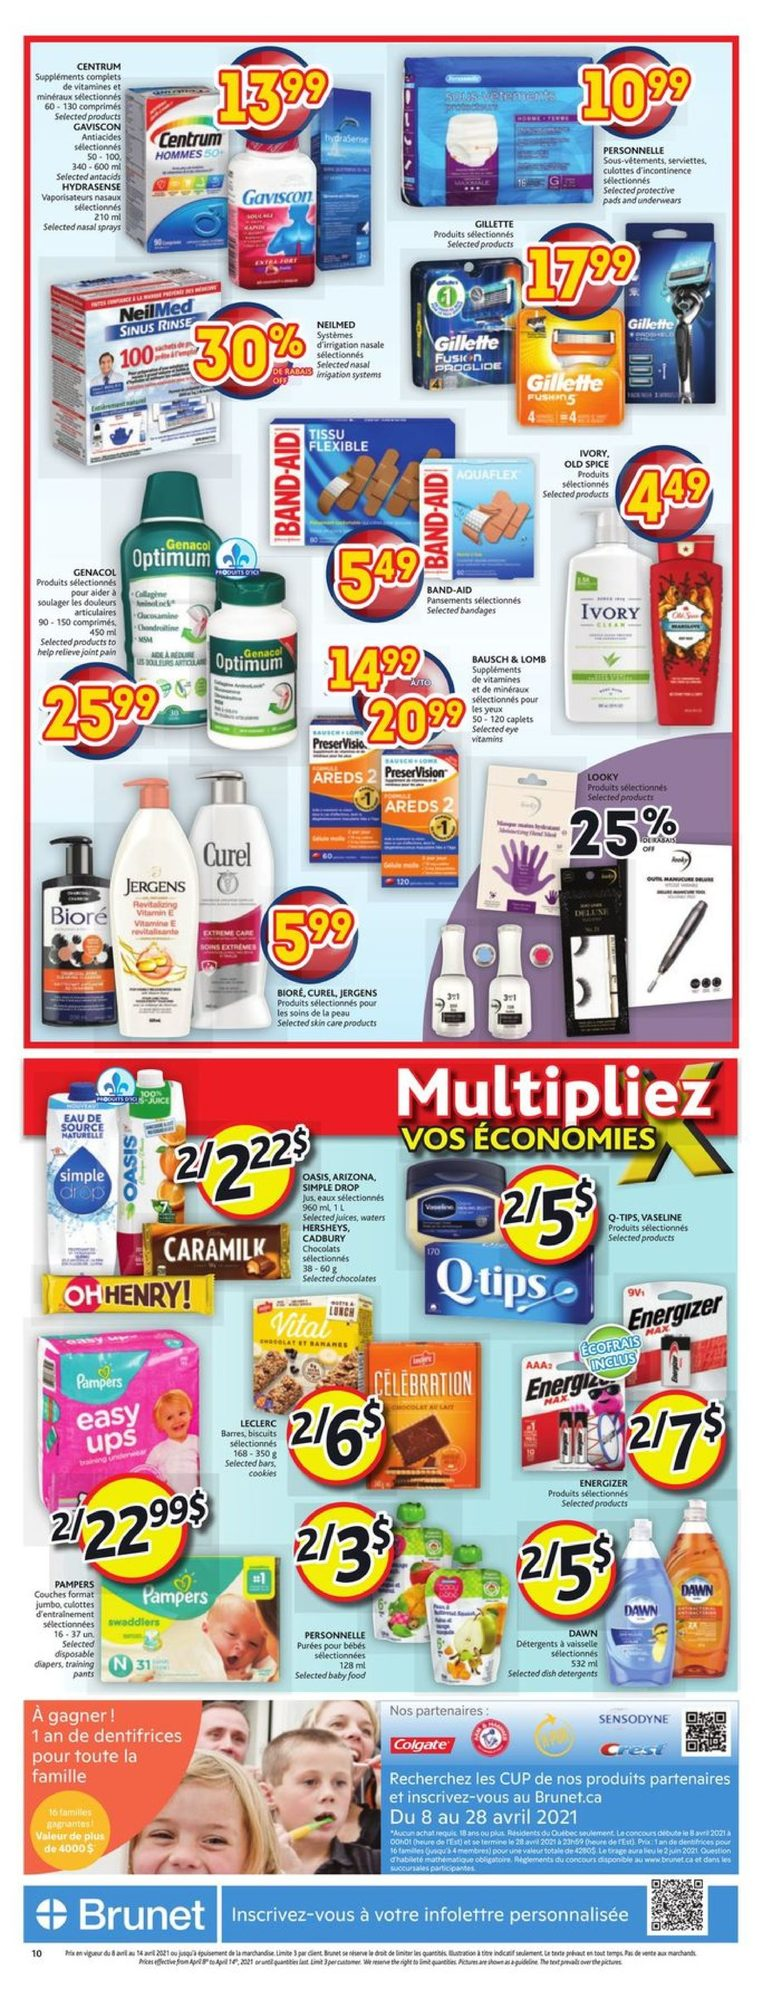 Brunet - Weekly Flyer Specials - Page 10